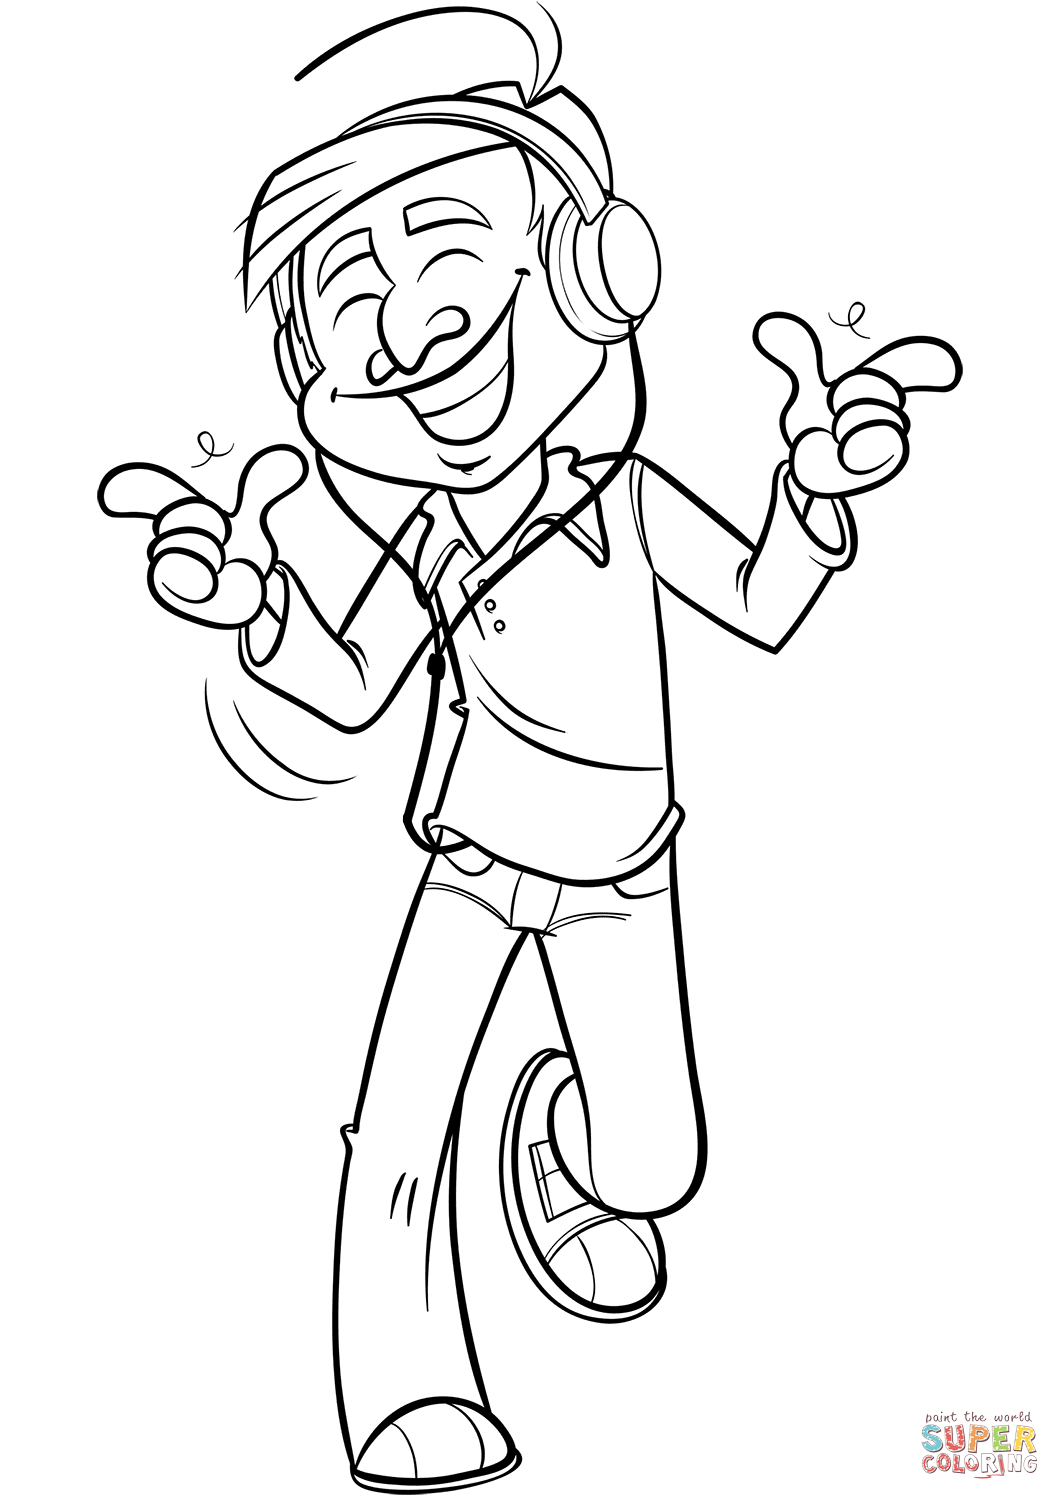 Man Listening To Music Coloring Page